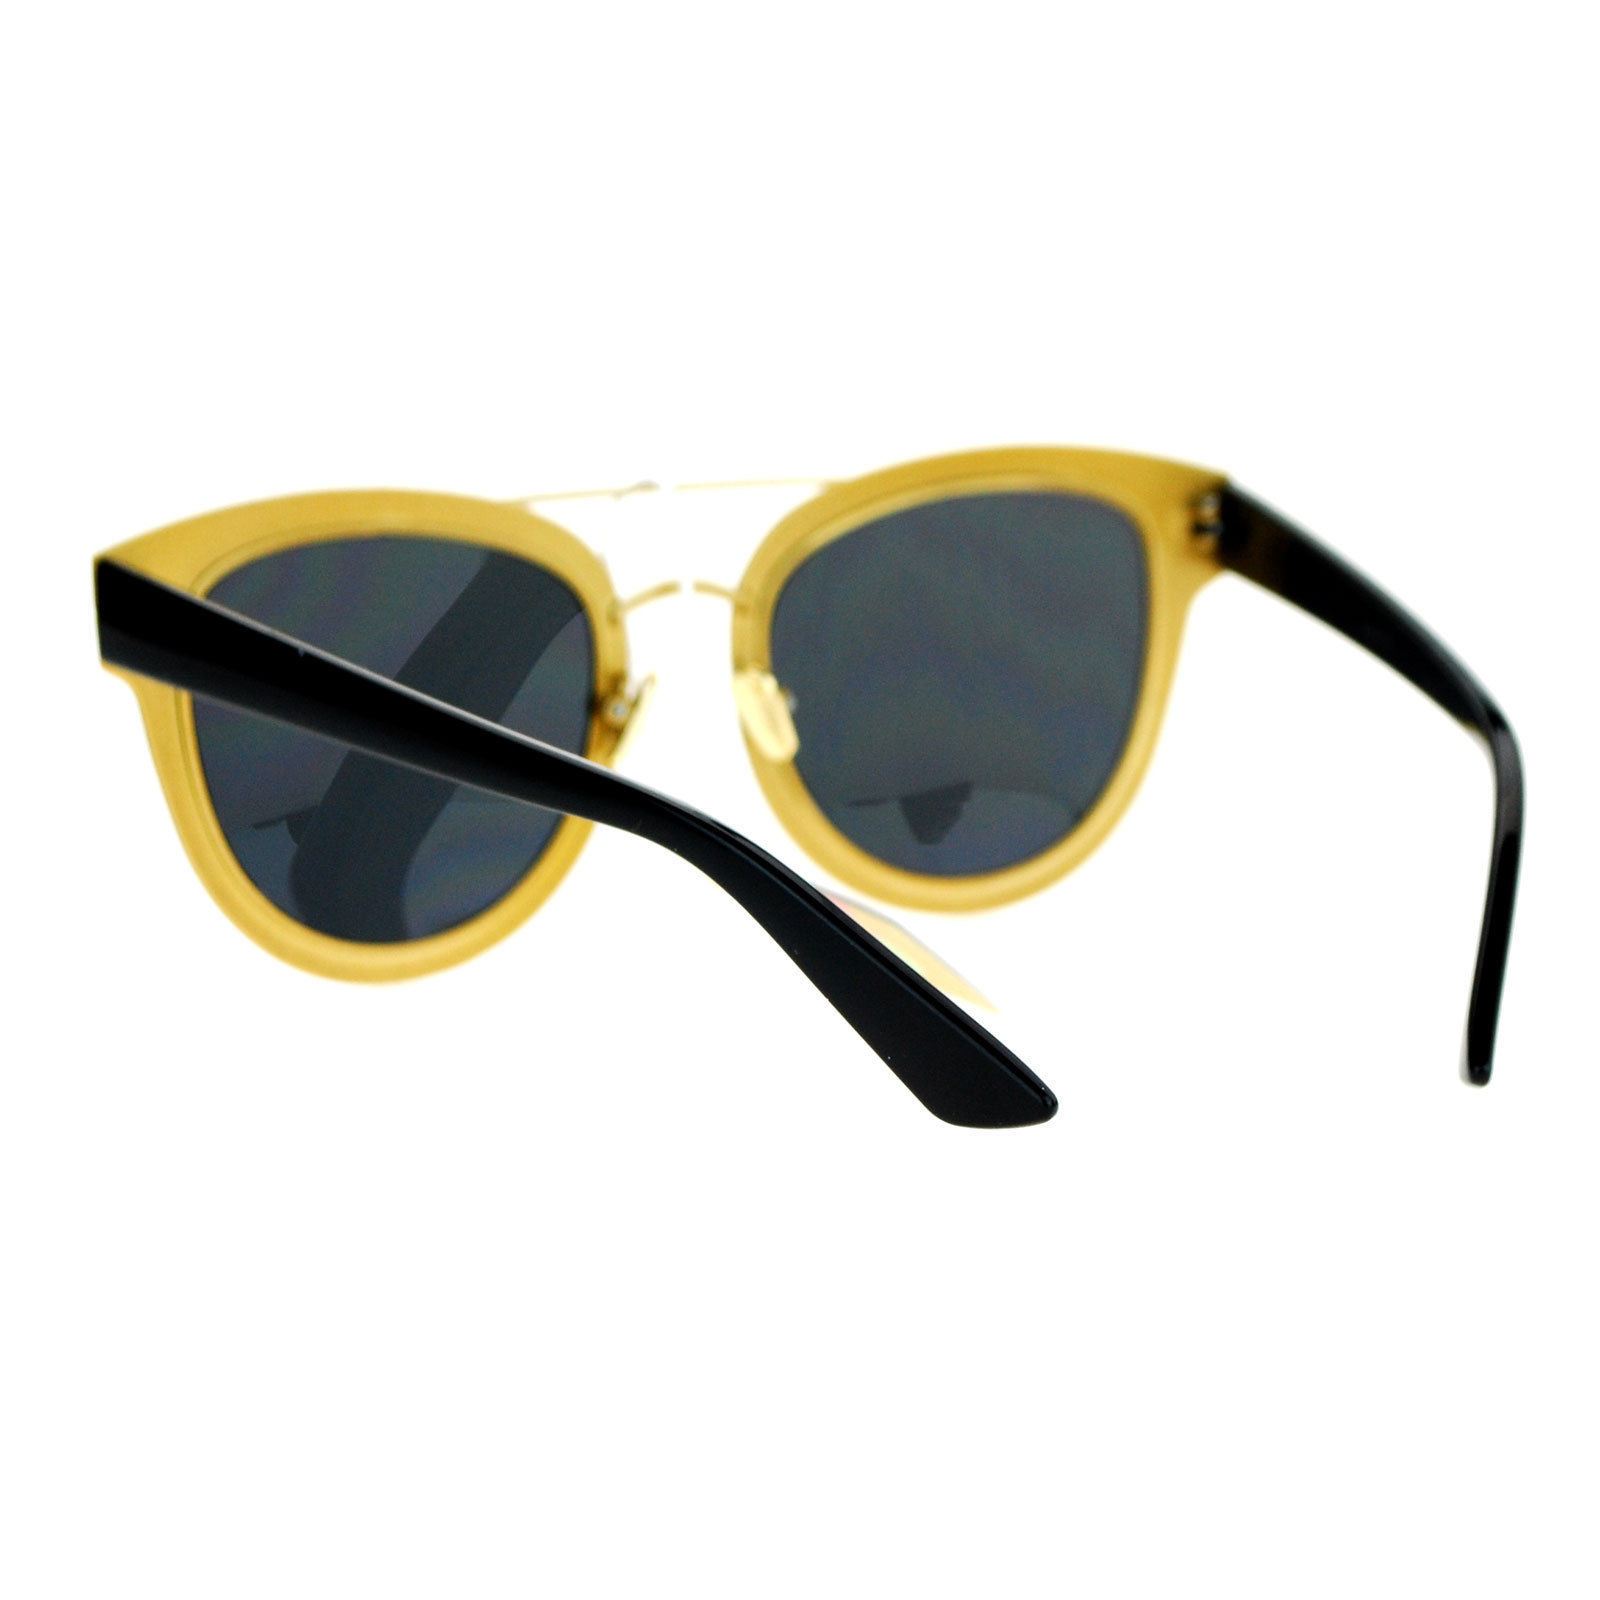 Fashion Sunglasses Womens Retro Horn Rim Flat Frame Eyewear